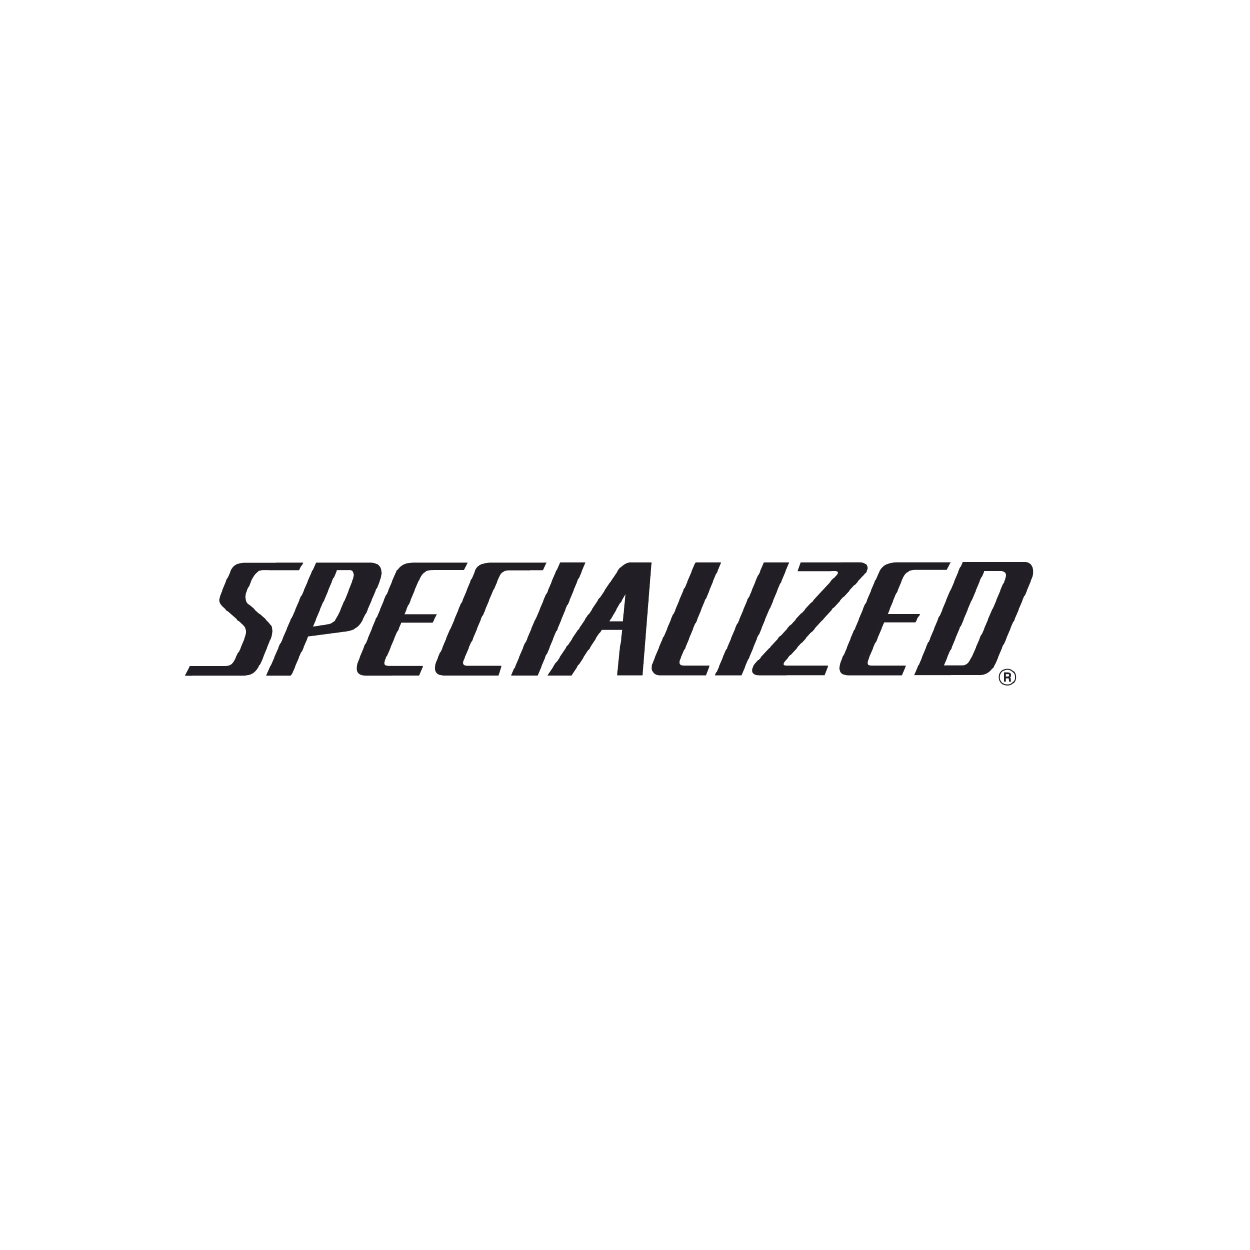 specialized-01.png